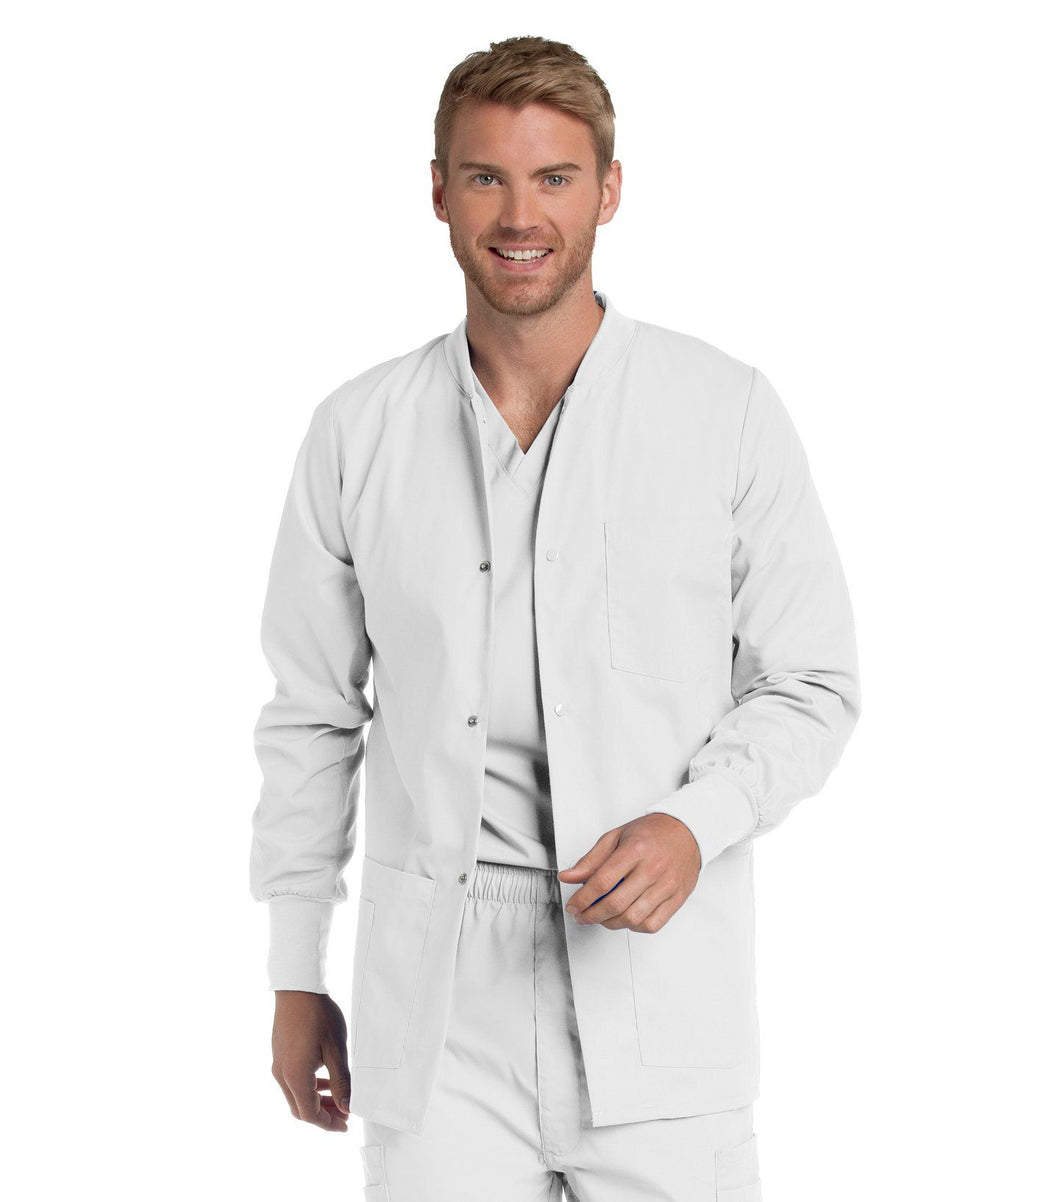 Men's Warm up Jacket with Snaps and knit cuffs -7551 teddyincorp Small